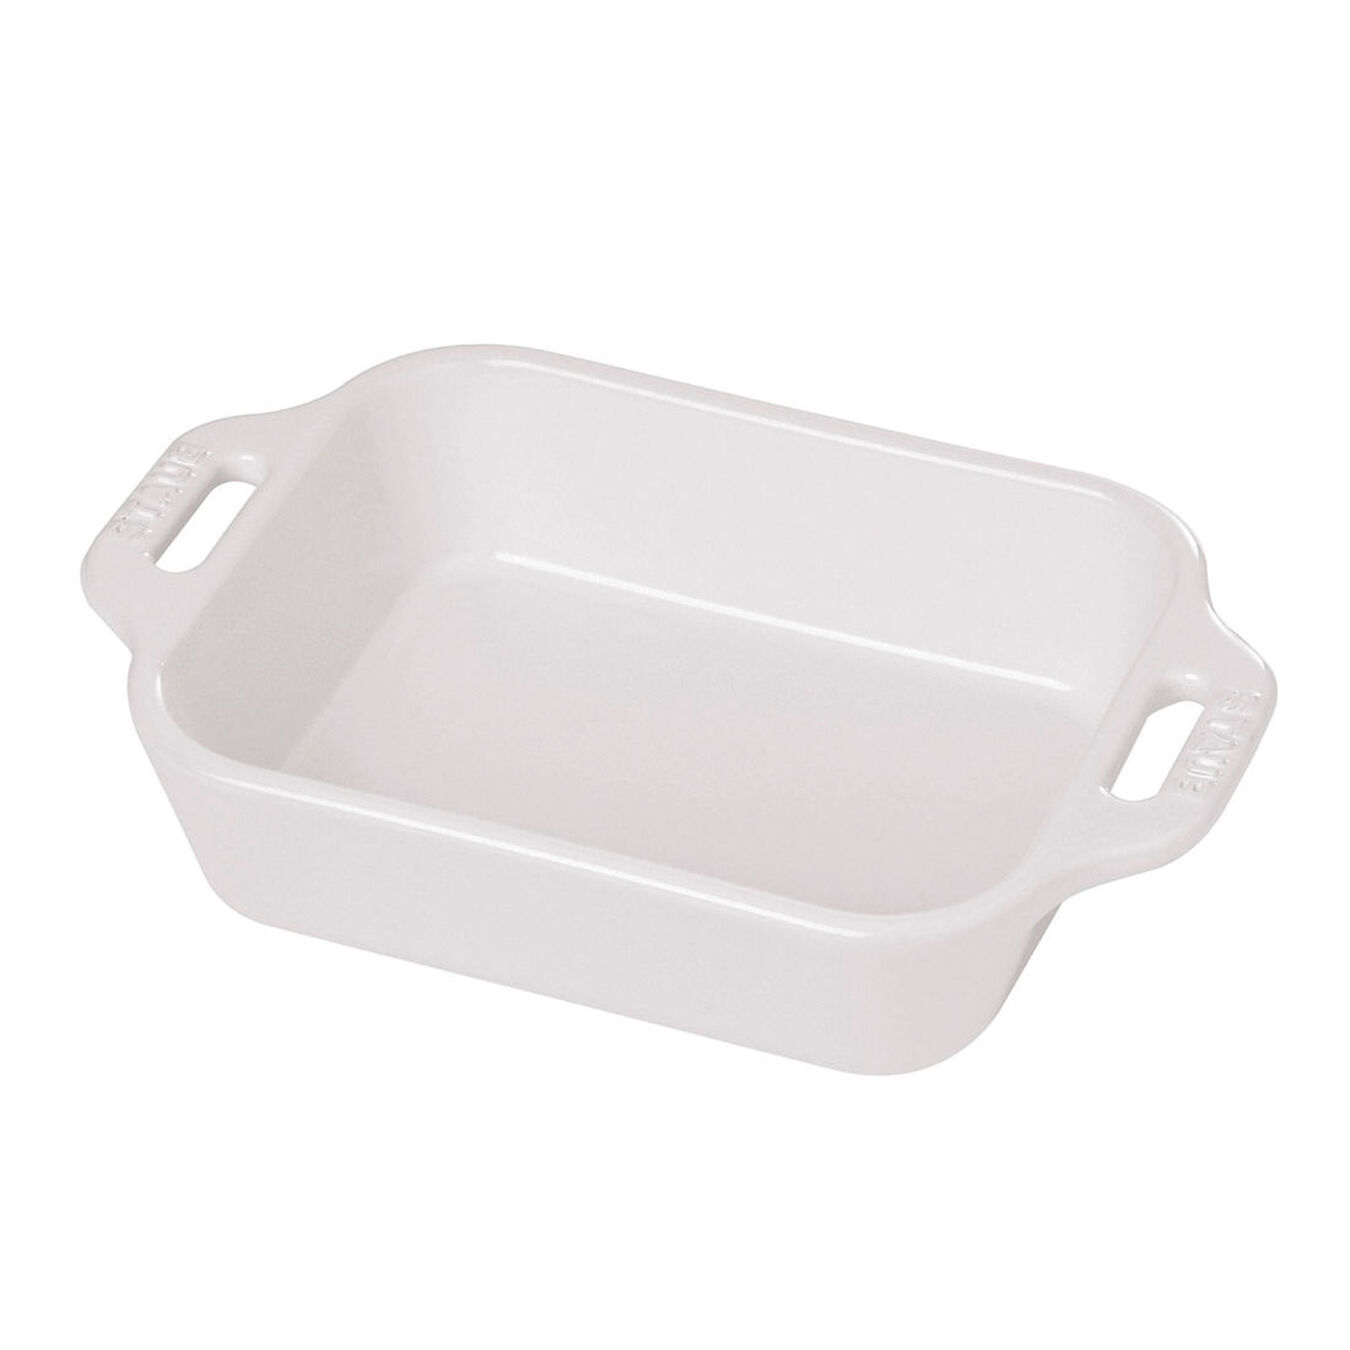 13-inch x 9-inch Rectangular Baking Dish - White,,large 1